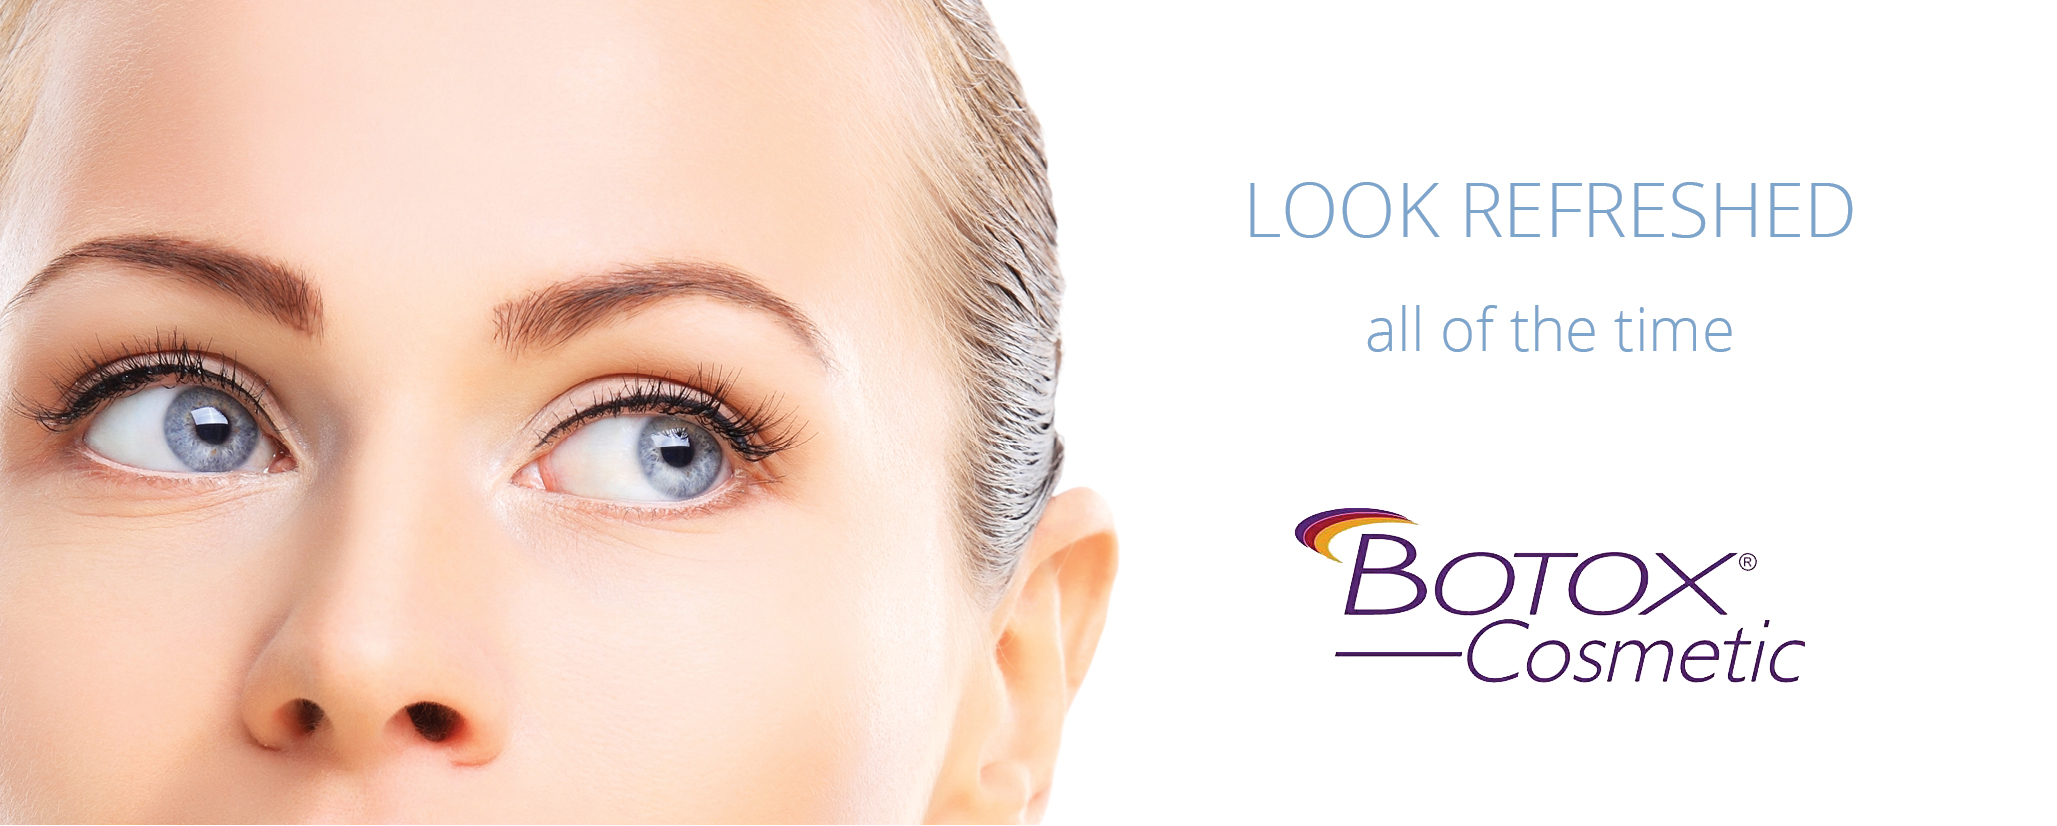 Botox Cosmetic leaves you looking refreshed all the time